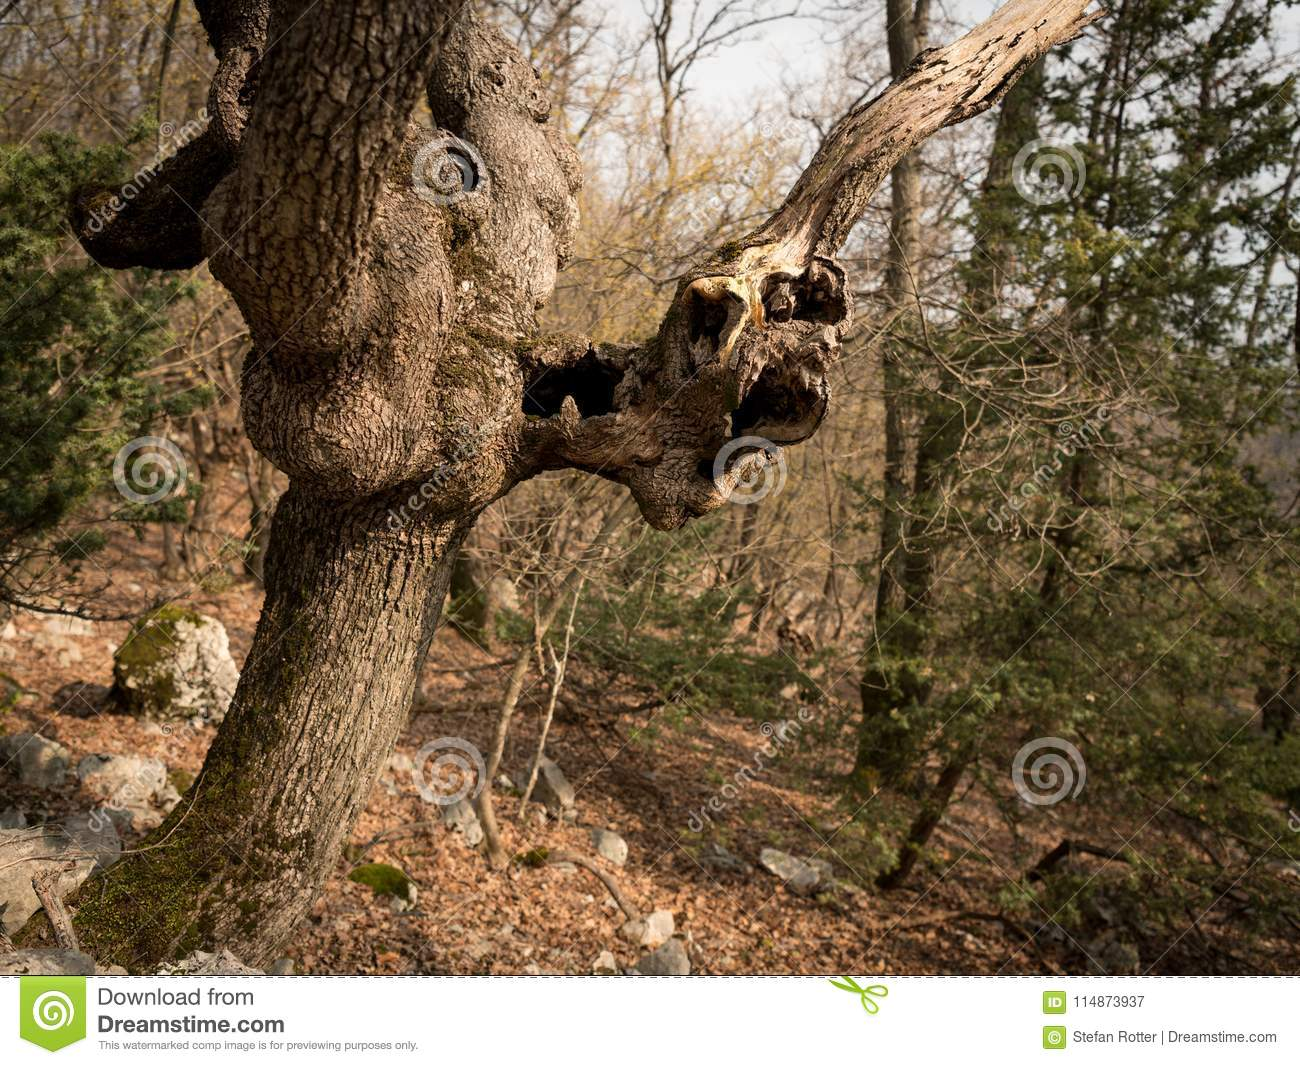 An old tree with cavities and holes